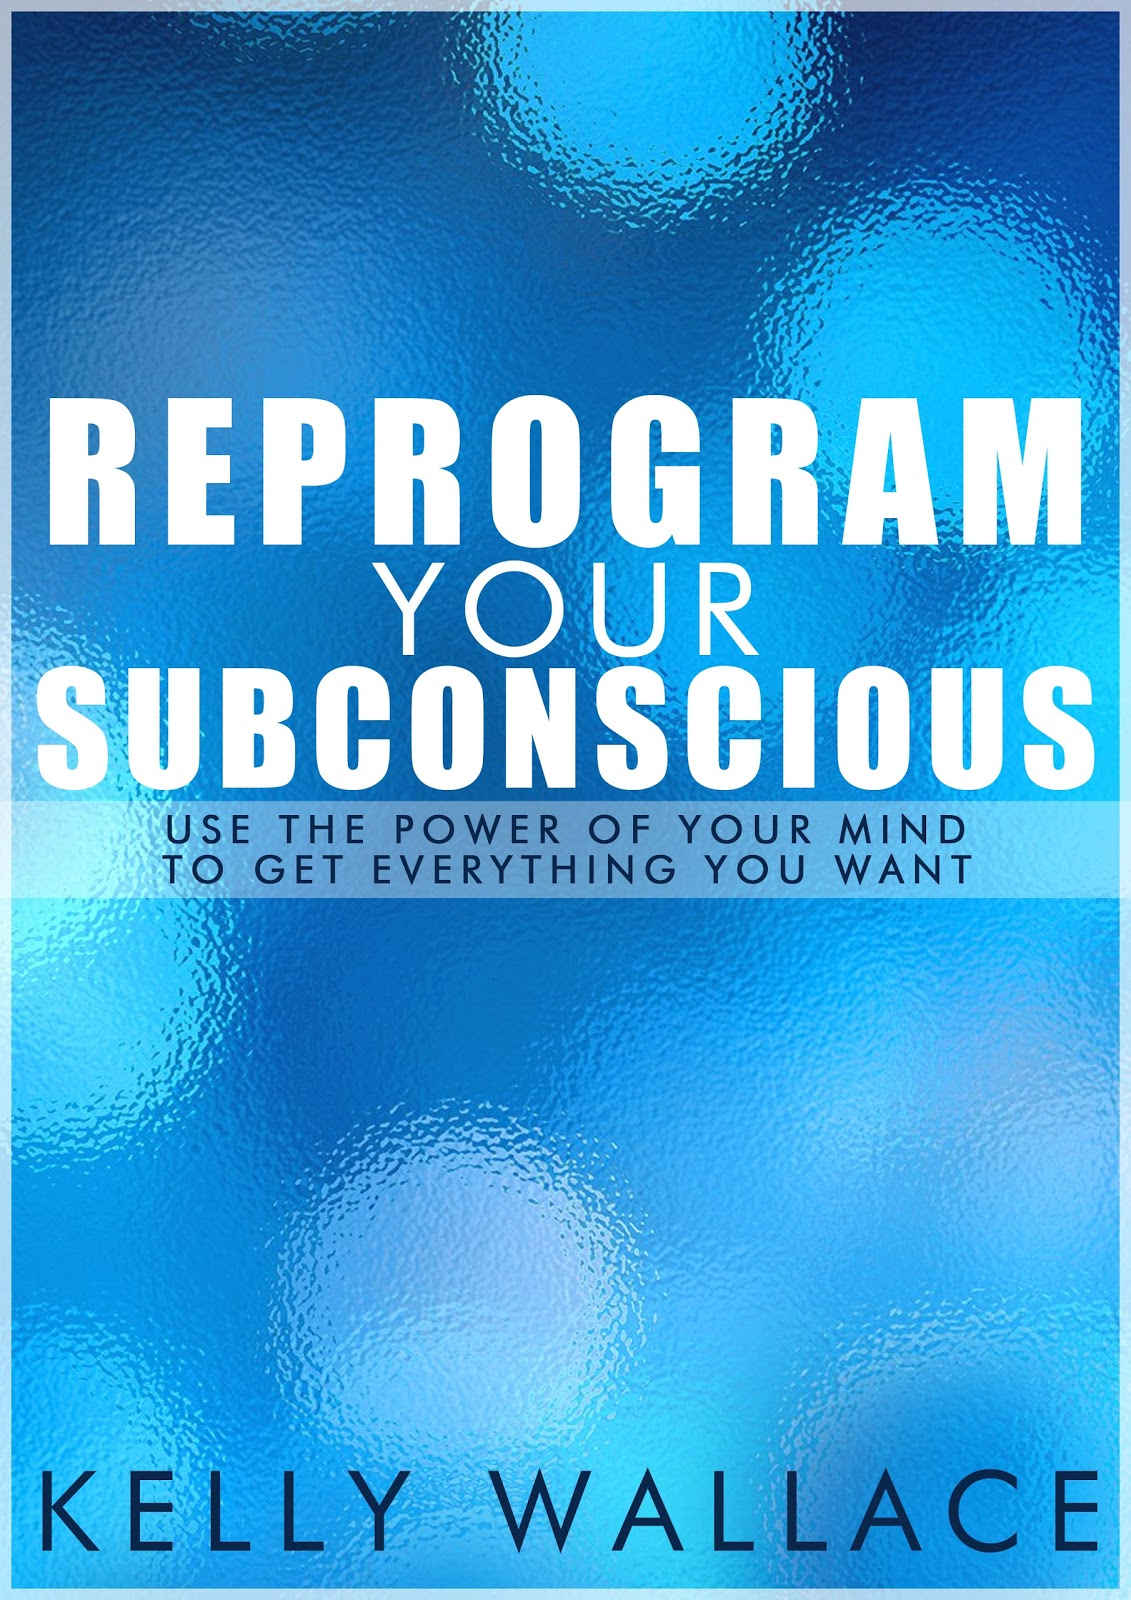 Reprogramming the subconscious mind mp3